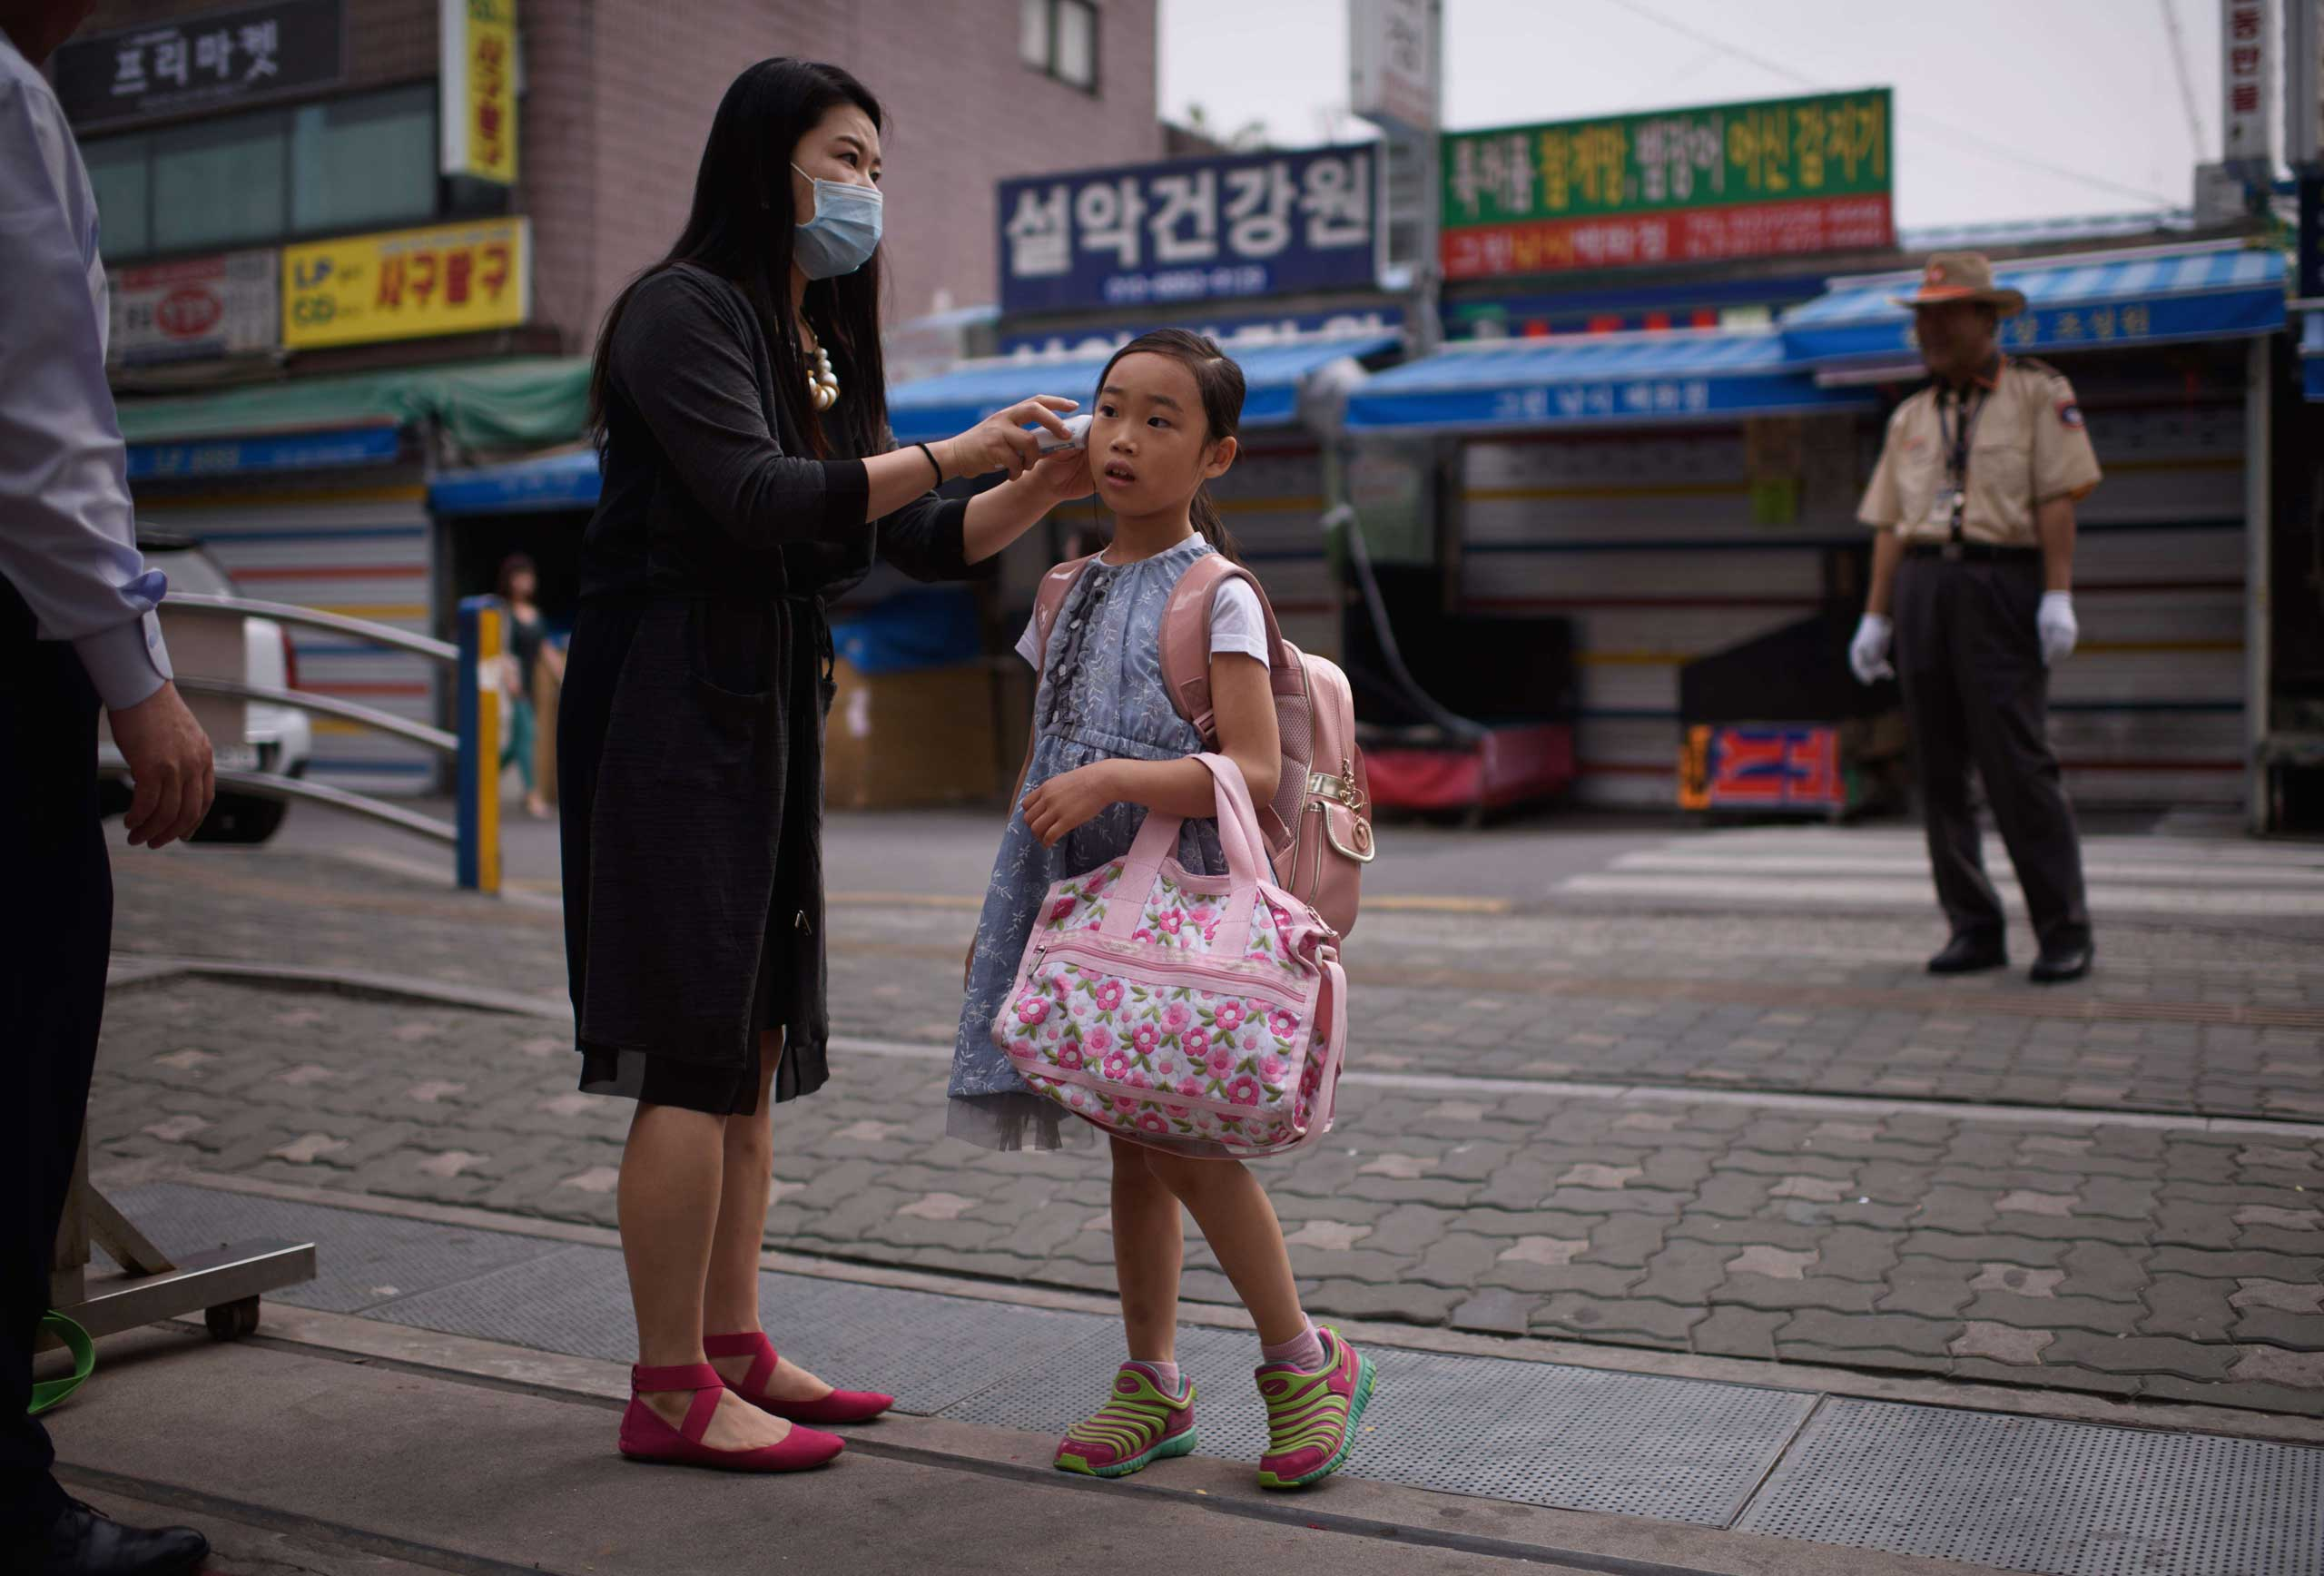 A student has her temperature taken by a teacher outside the Sungshin elementary school in Seoul on June 8, 2015.